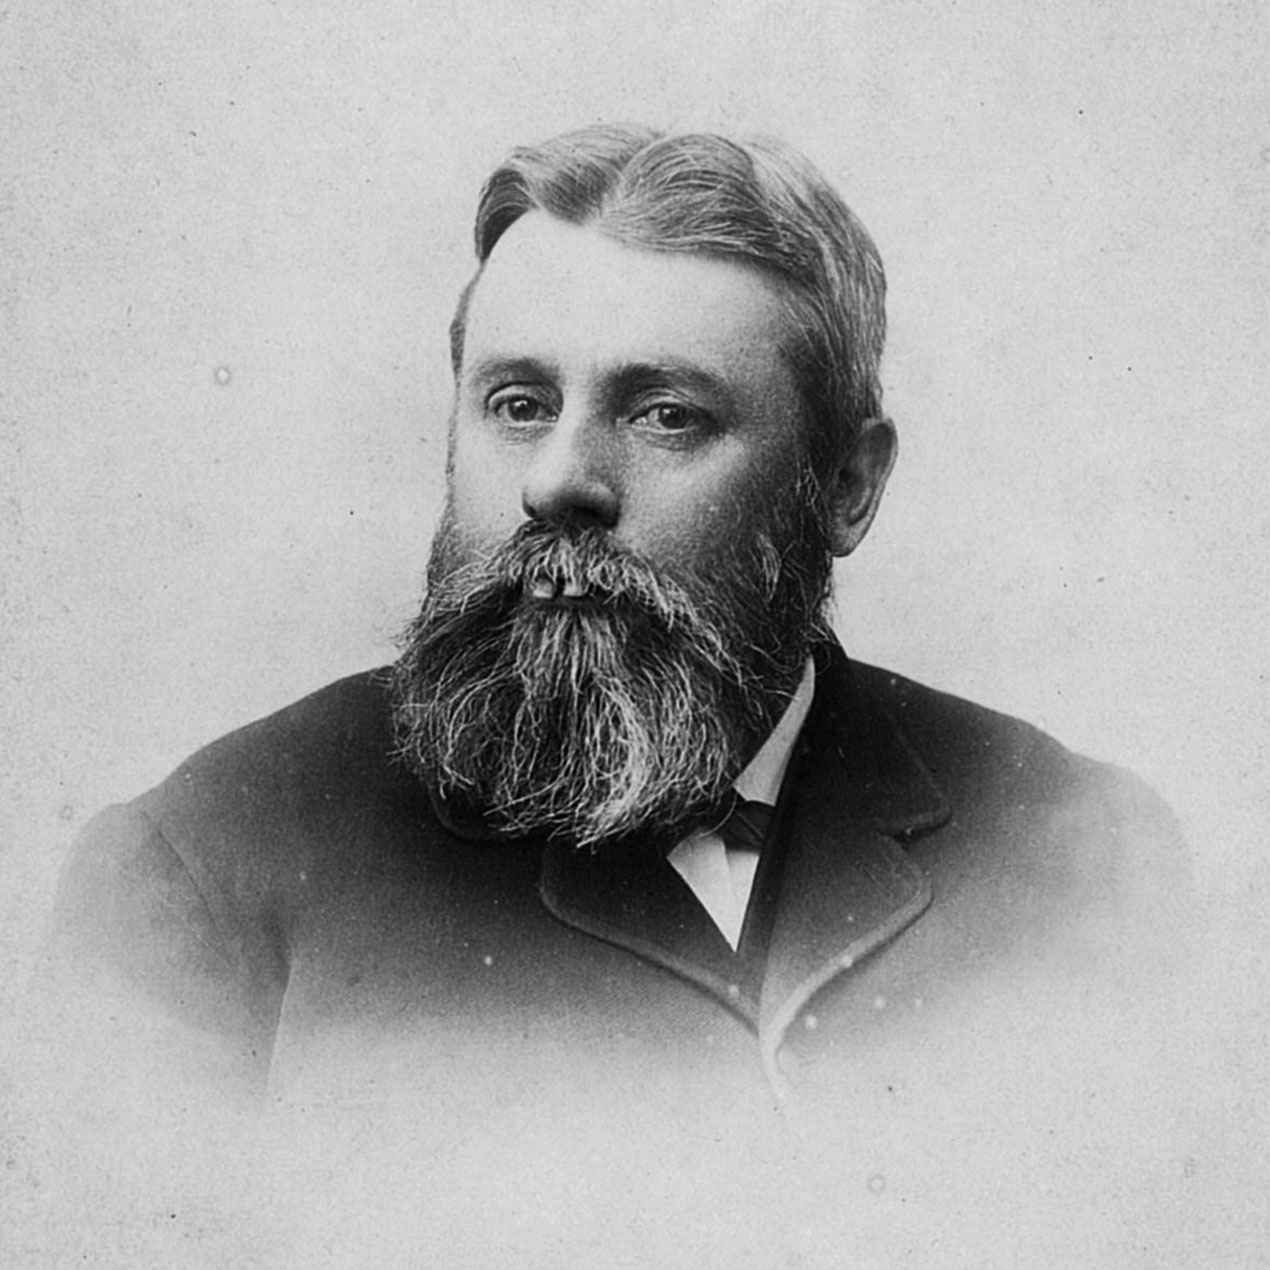 Photograph of Samuel J Reynolds, the founder of the Reynolds family business wearing a black suit